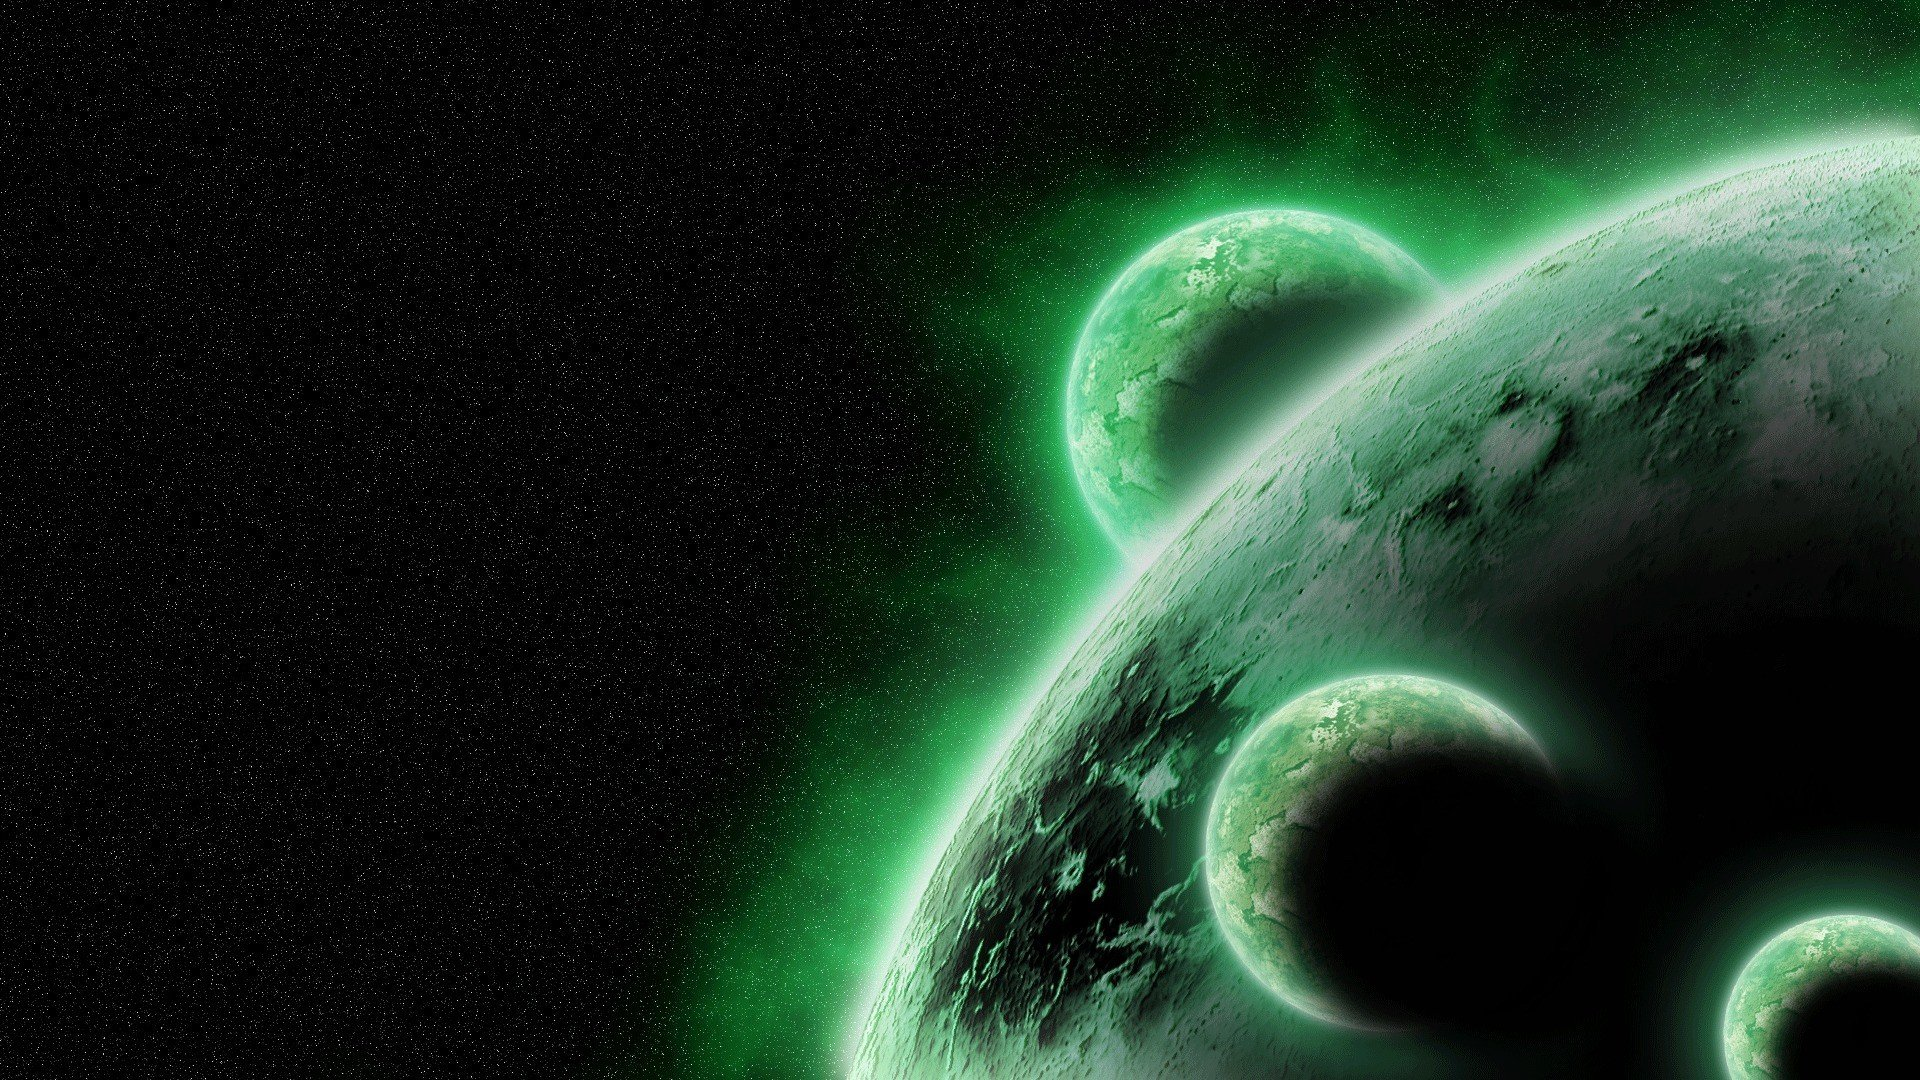 Green outer space stars planets wallpaper 1920x1080 - Space wallpaper green ...